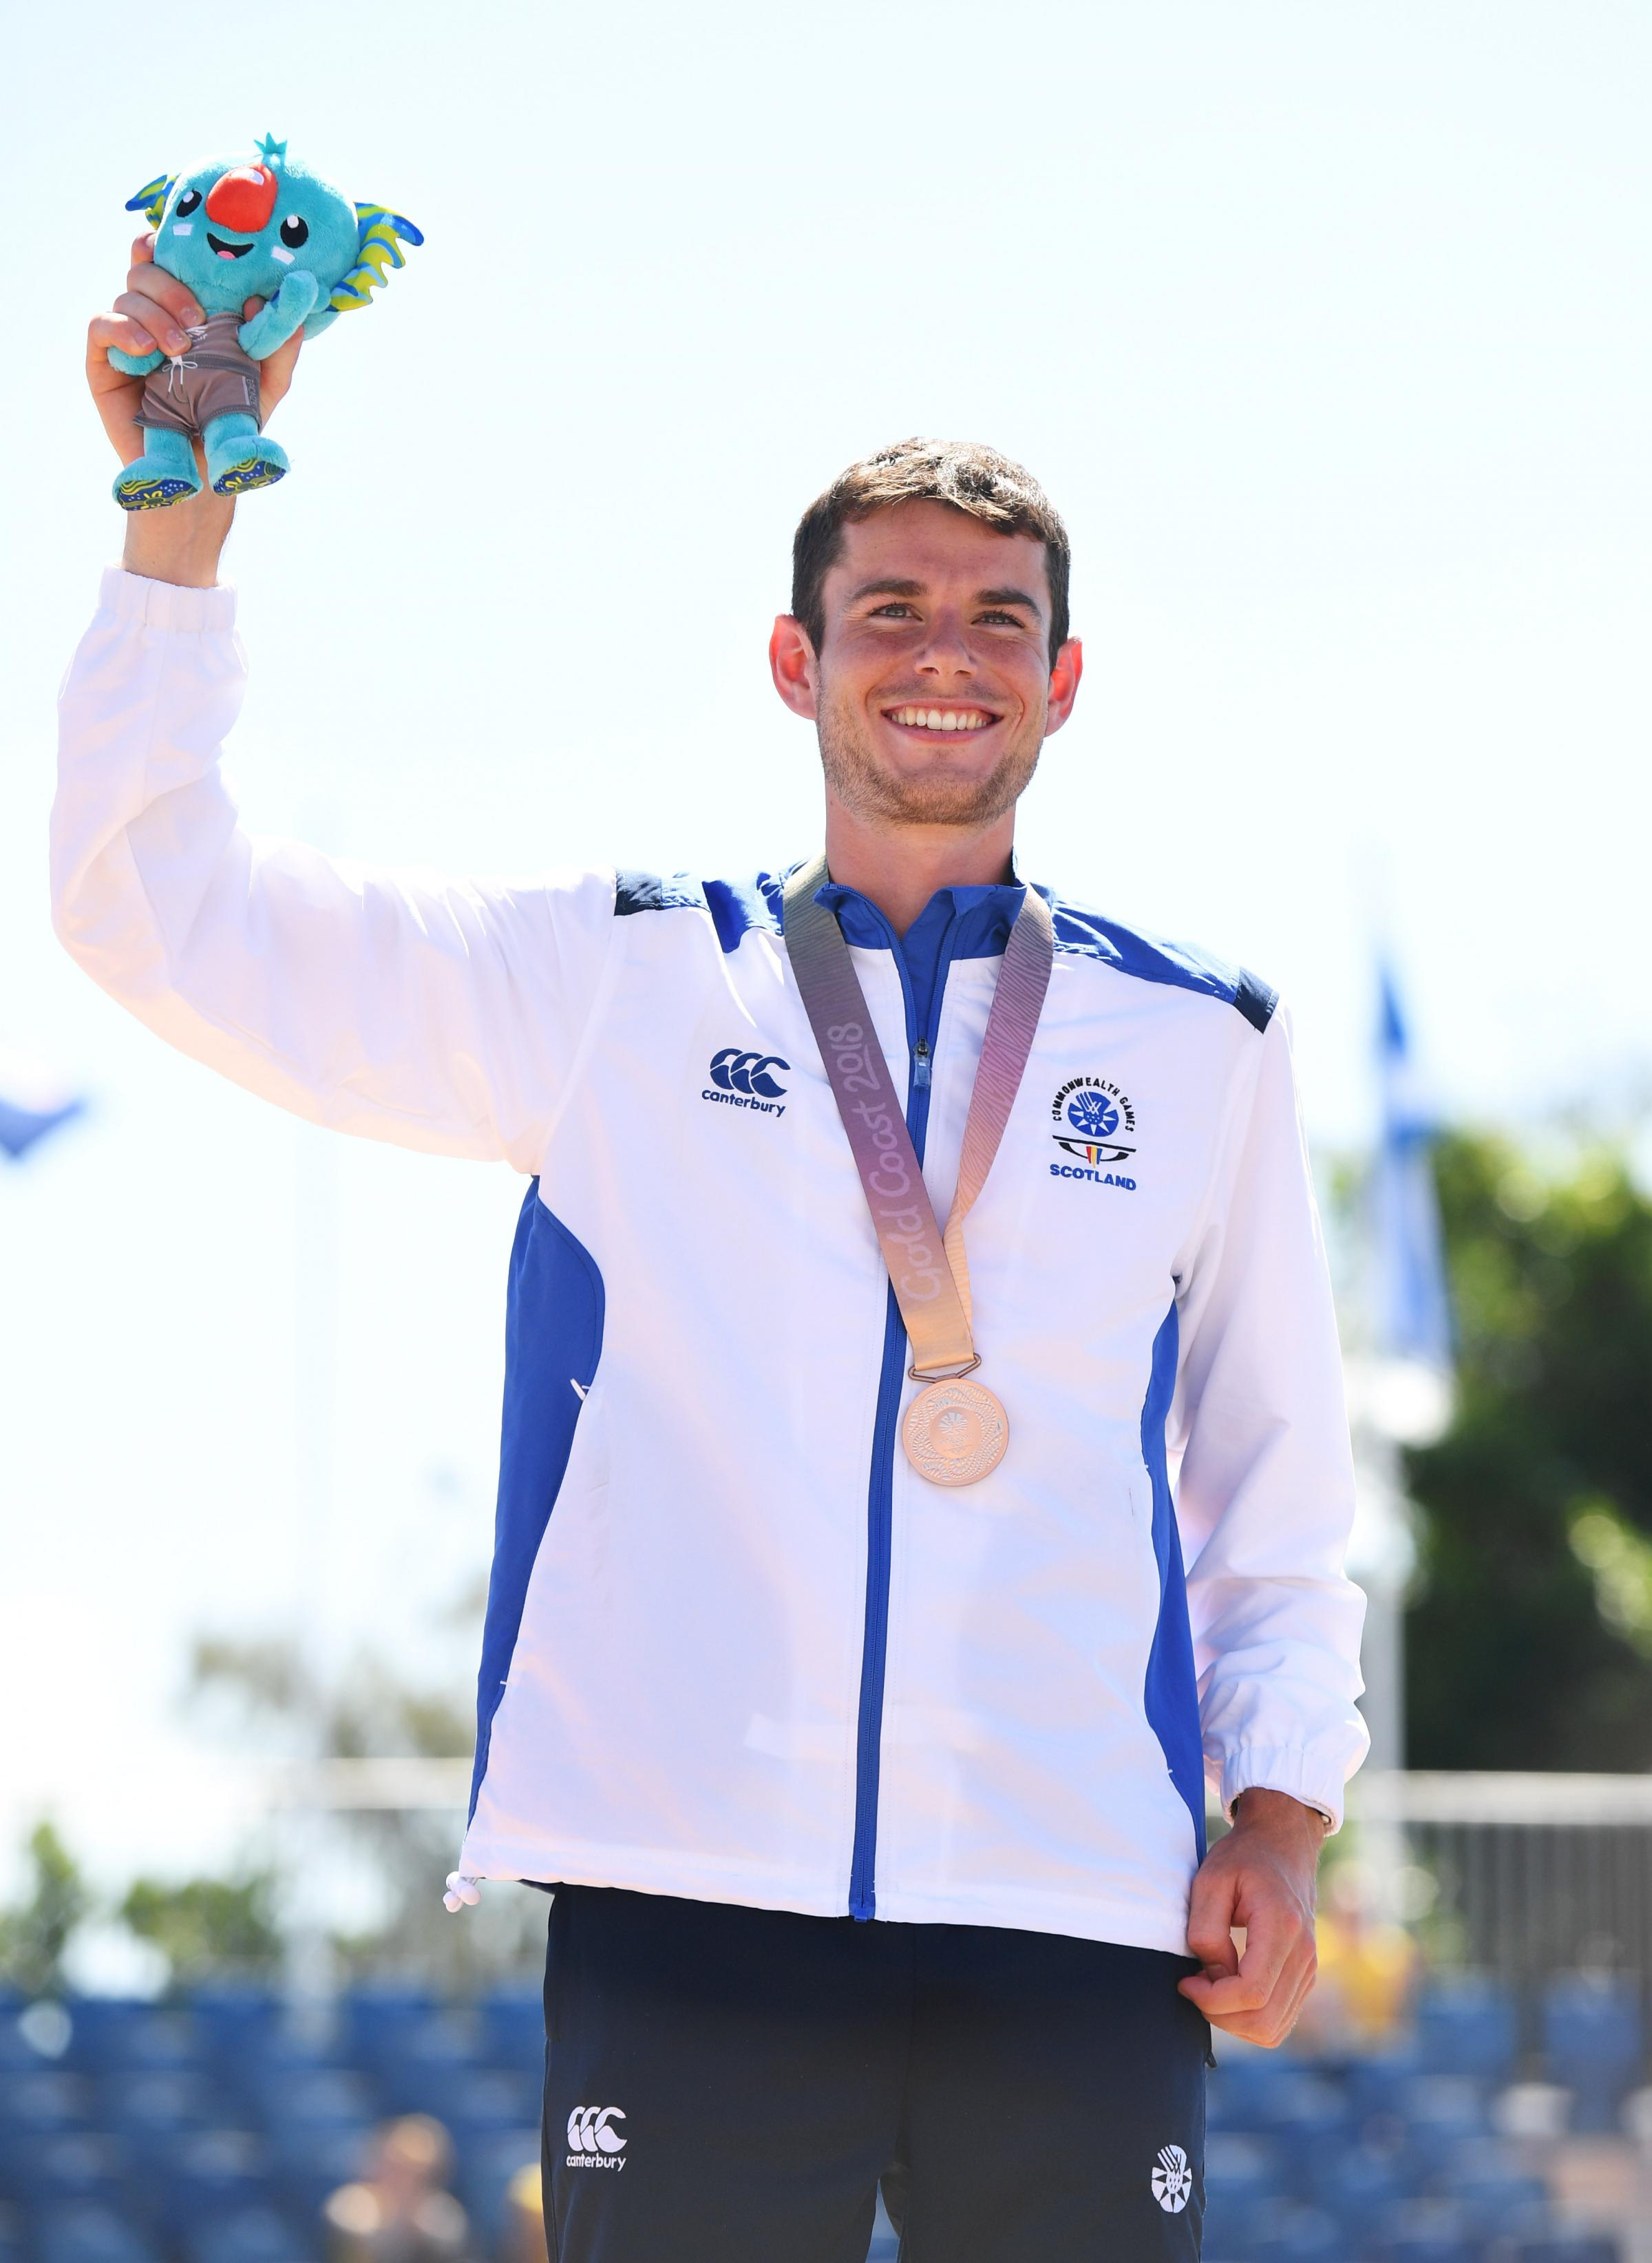 GOLD COAST, AUSTRALIA - APRIL 15:  Bronze medalist Robbie Simpson of Scotland celebrates during the medal ceremony for the MenÂs marathon  on day 11 of the Gold Coast 2018 Commonwealth Games at Southport Broadwater Parklands on April 15, 2018 on the Gold